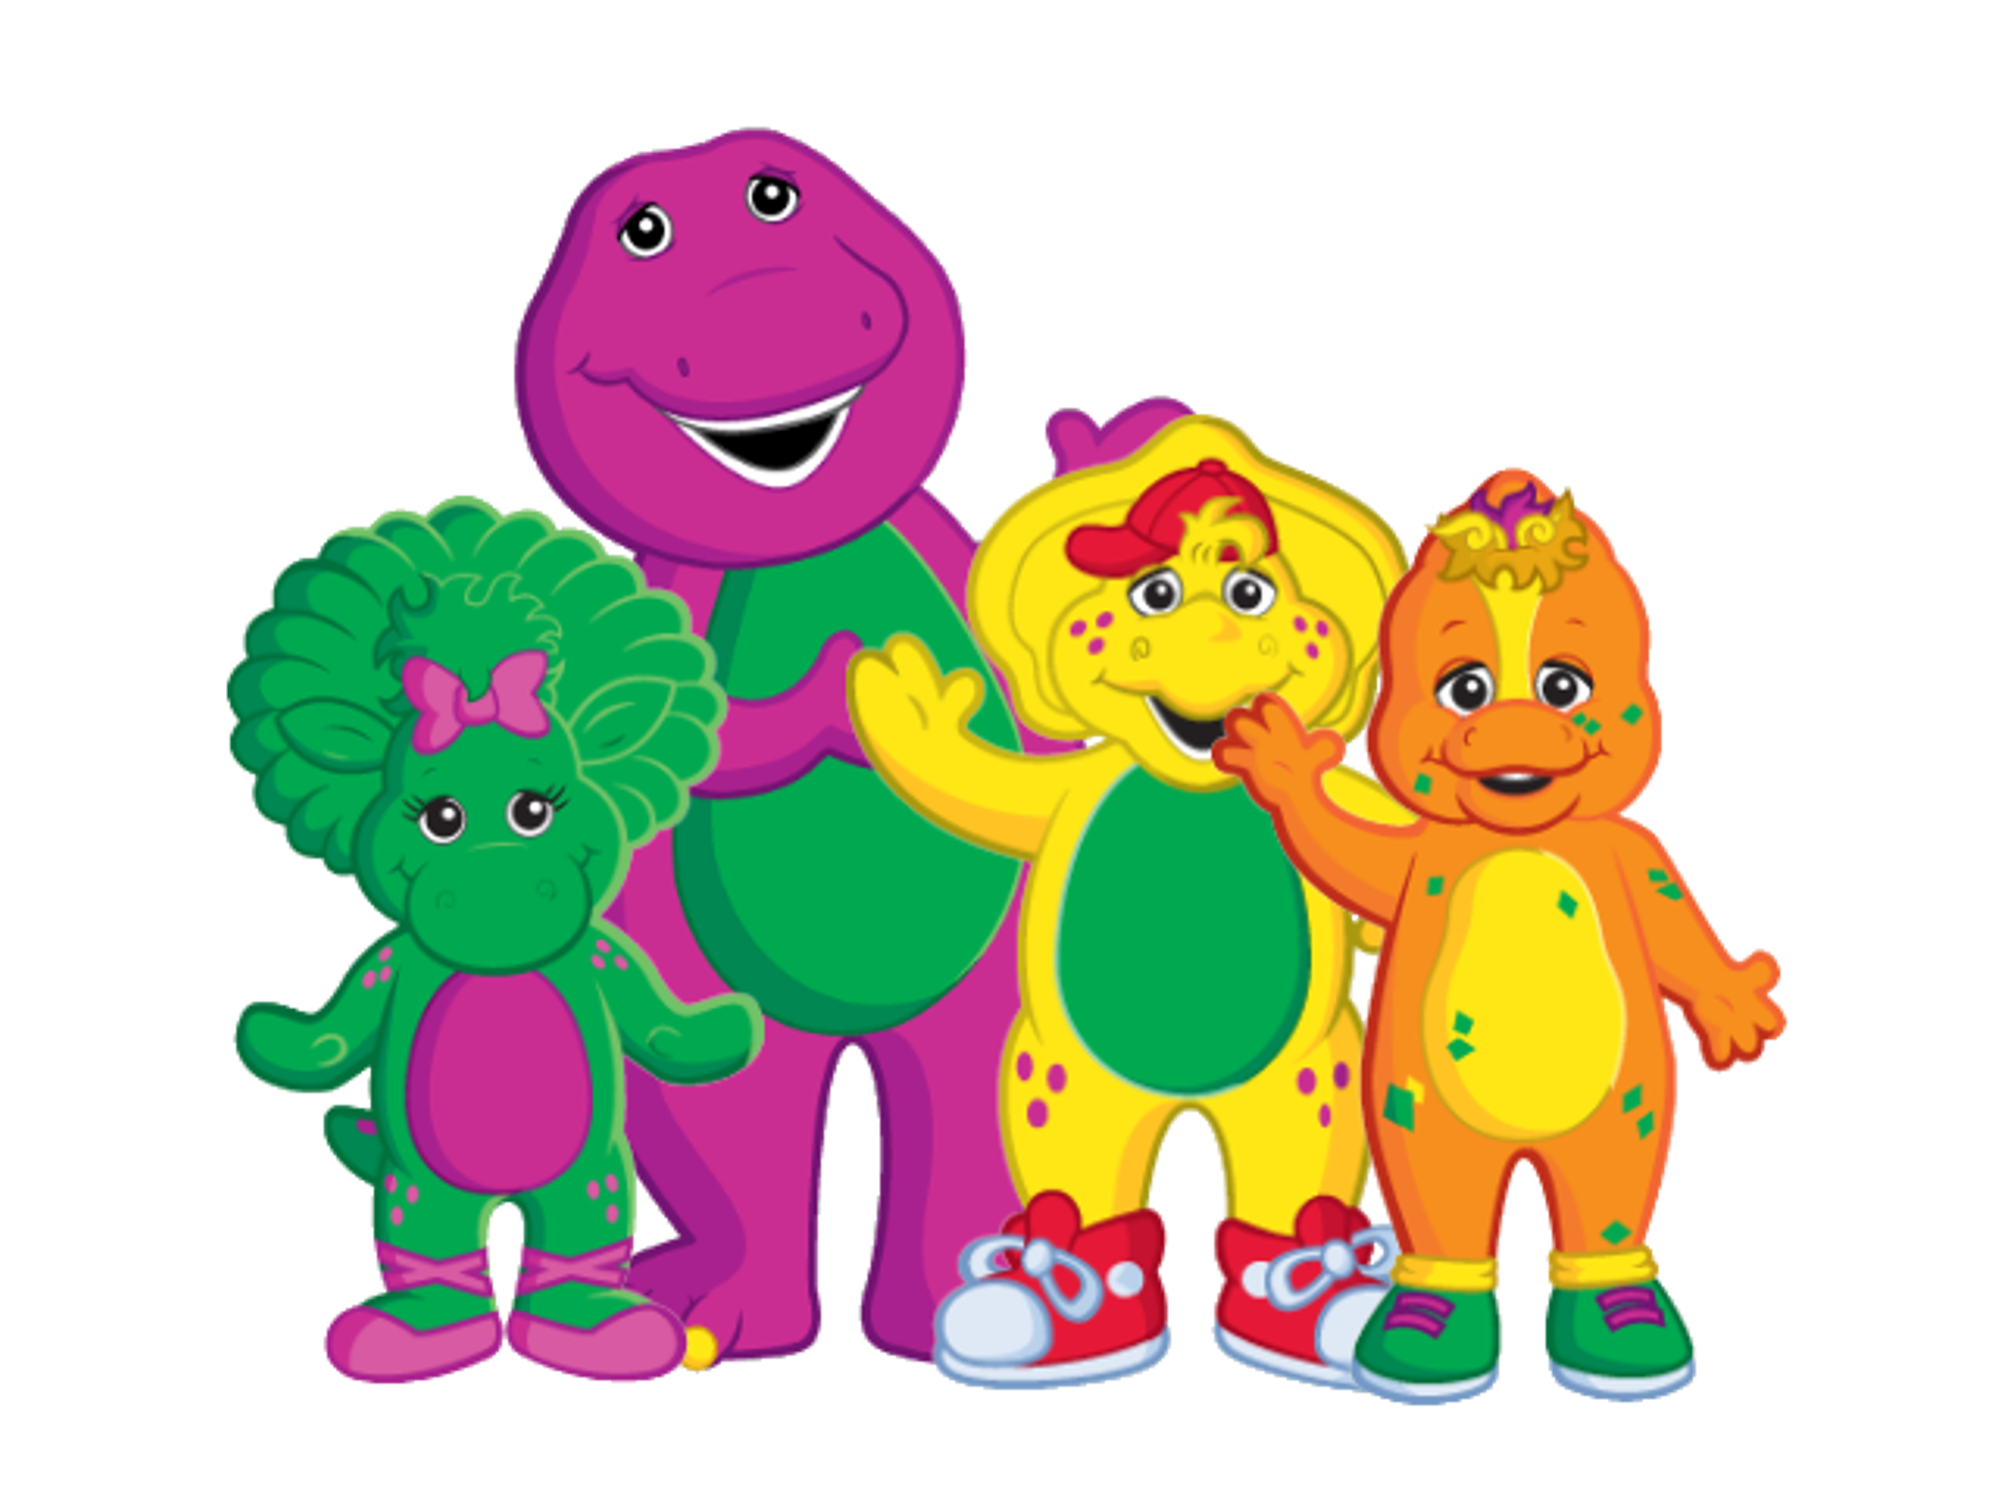 Barney And Friends Png & Free Barney And Friends.png Transparent.